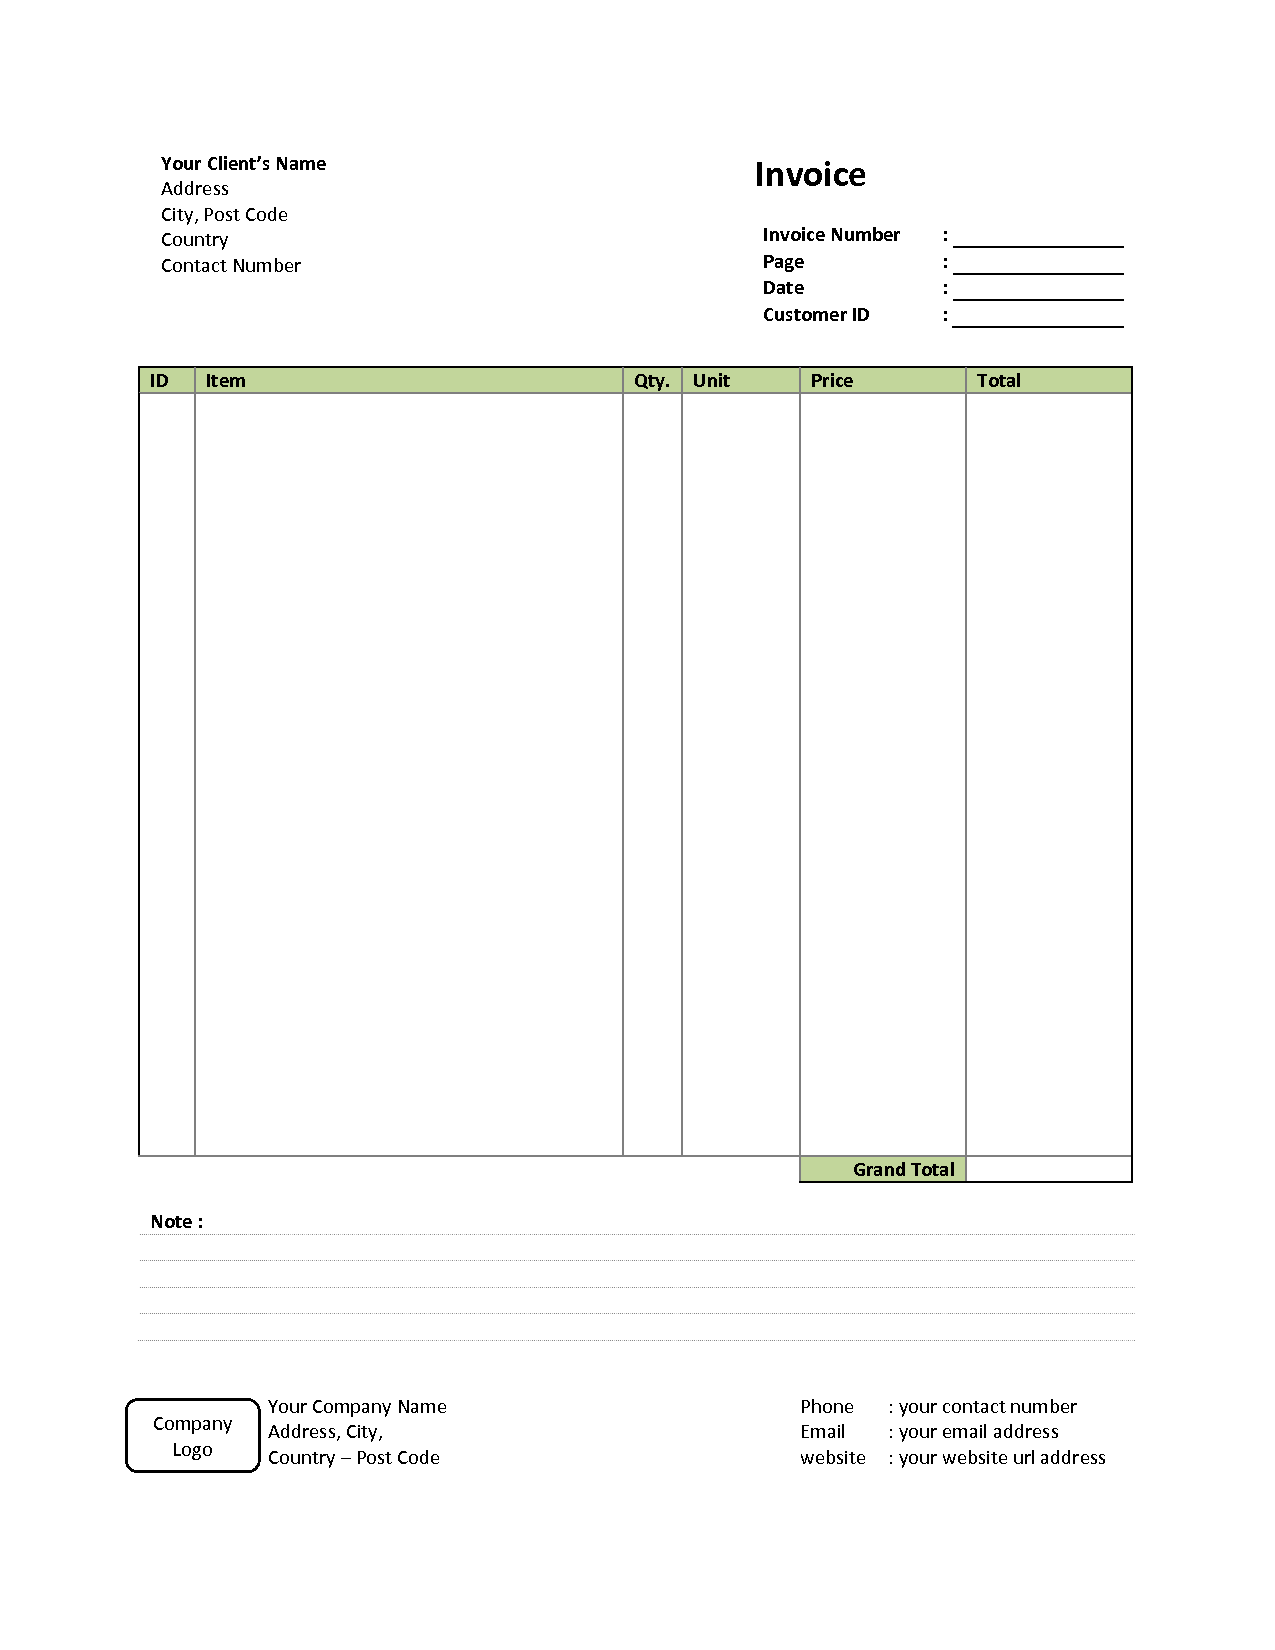 Invoice Statement Template Free and Simple Invoice Template Free to Do List